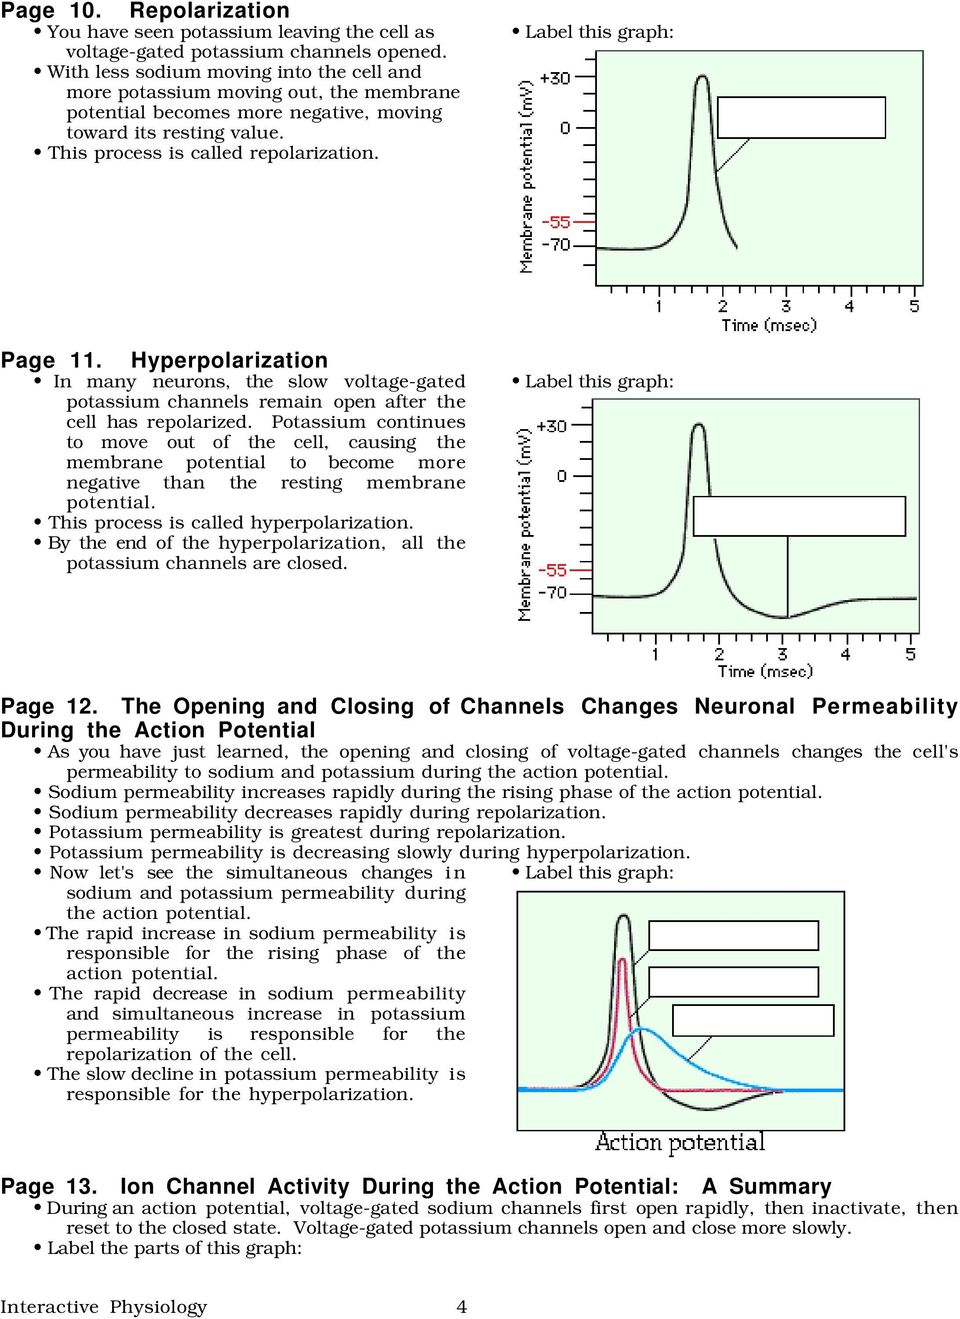 The Action Potential Graphics Are Used With Permission Of Adam Com Benjamin Cummings Publishing Co Pdf Free Download